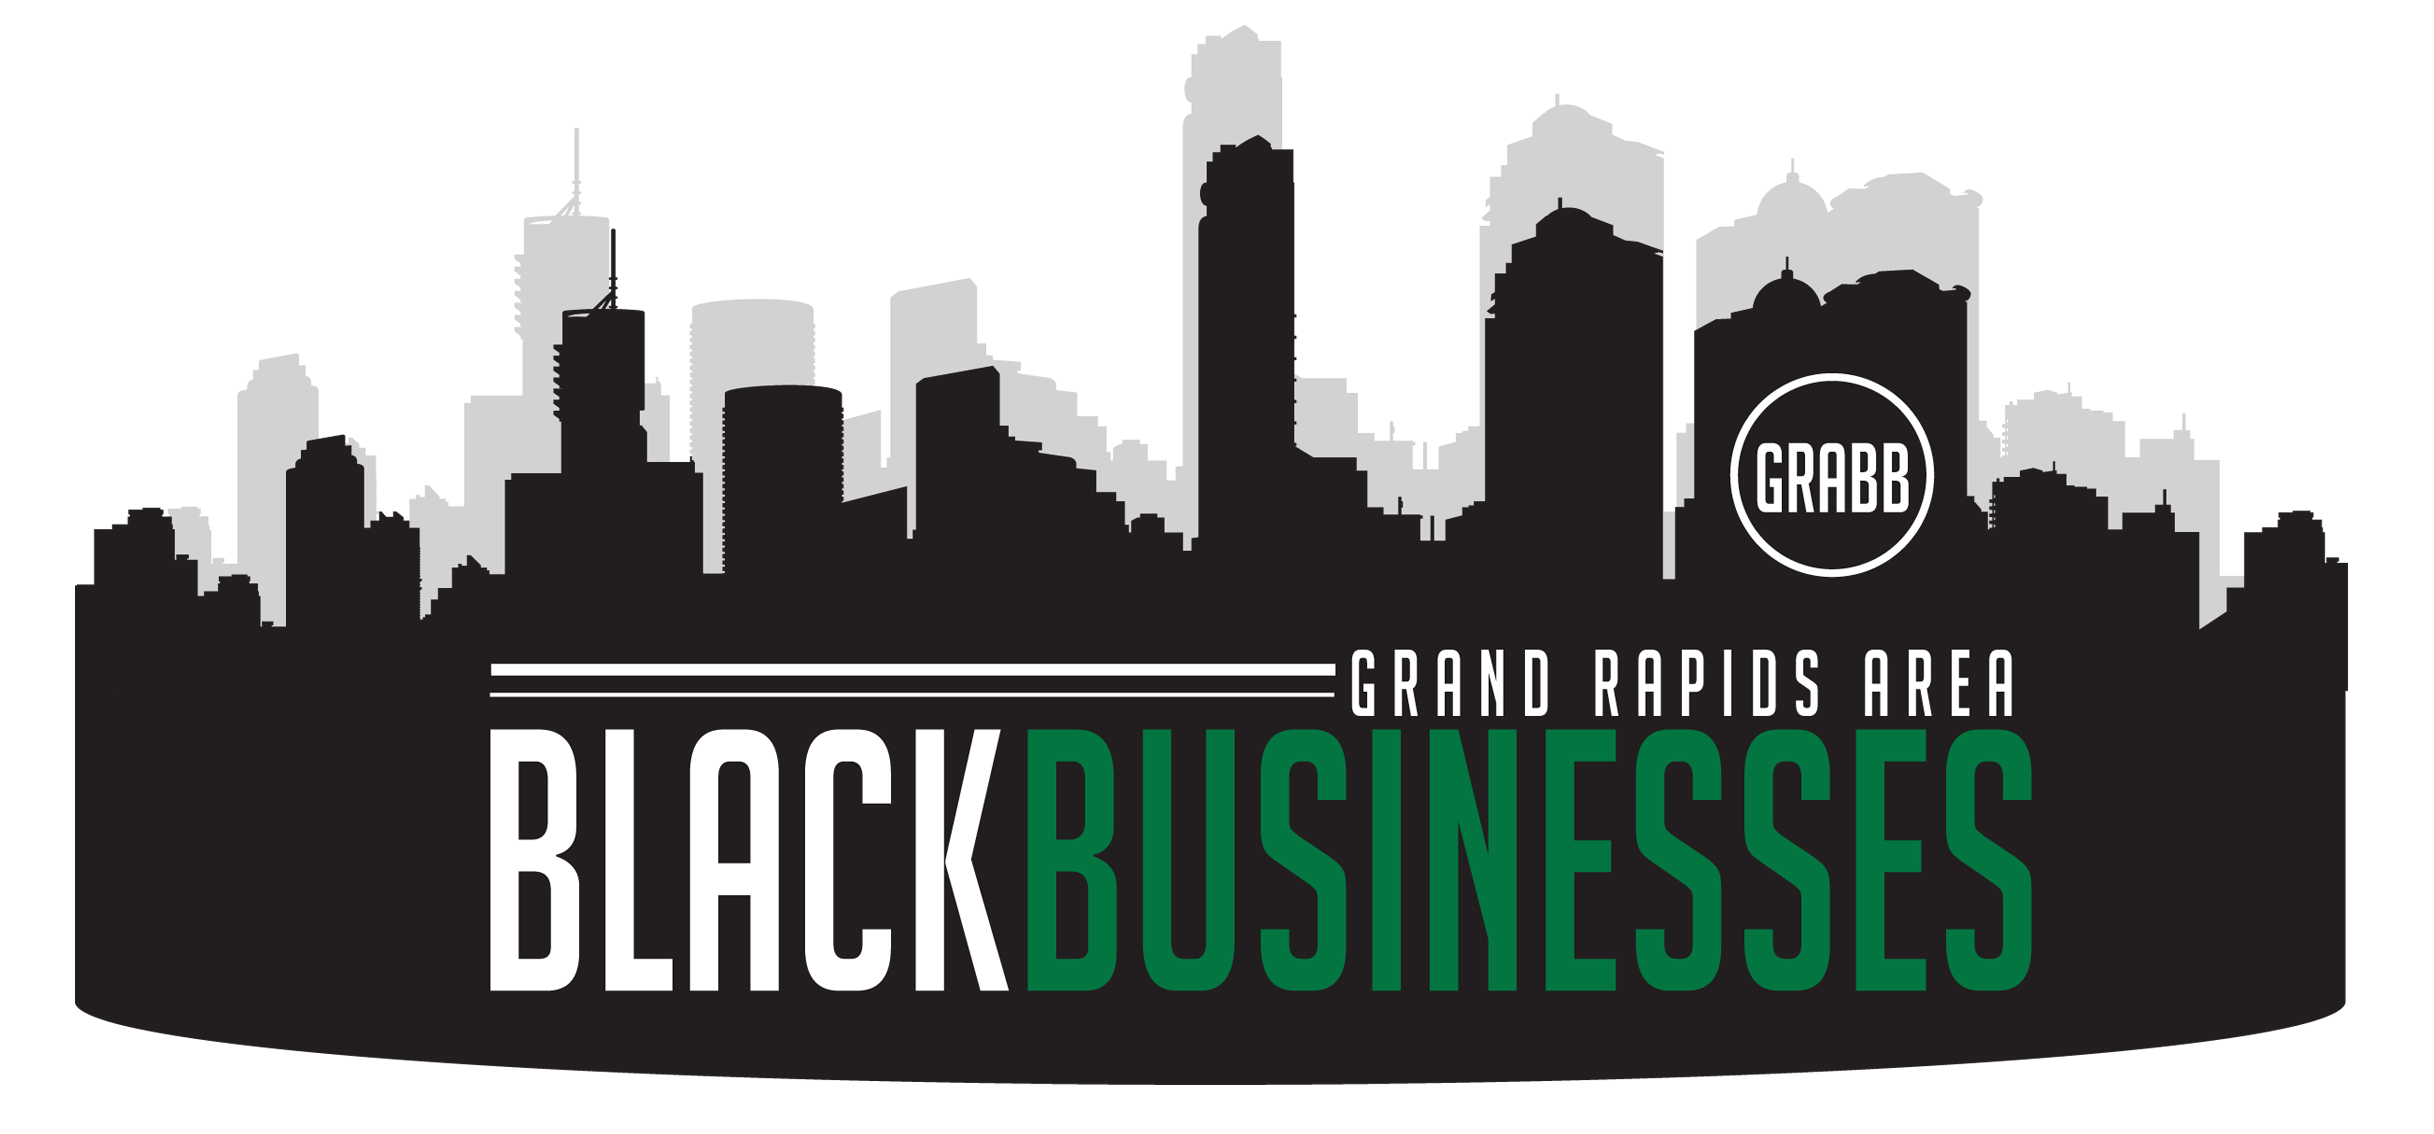 Grand Rapids Area Black Businesses logo